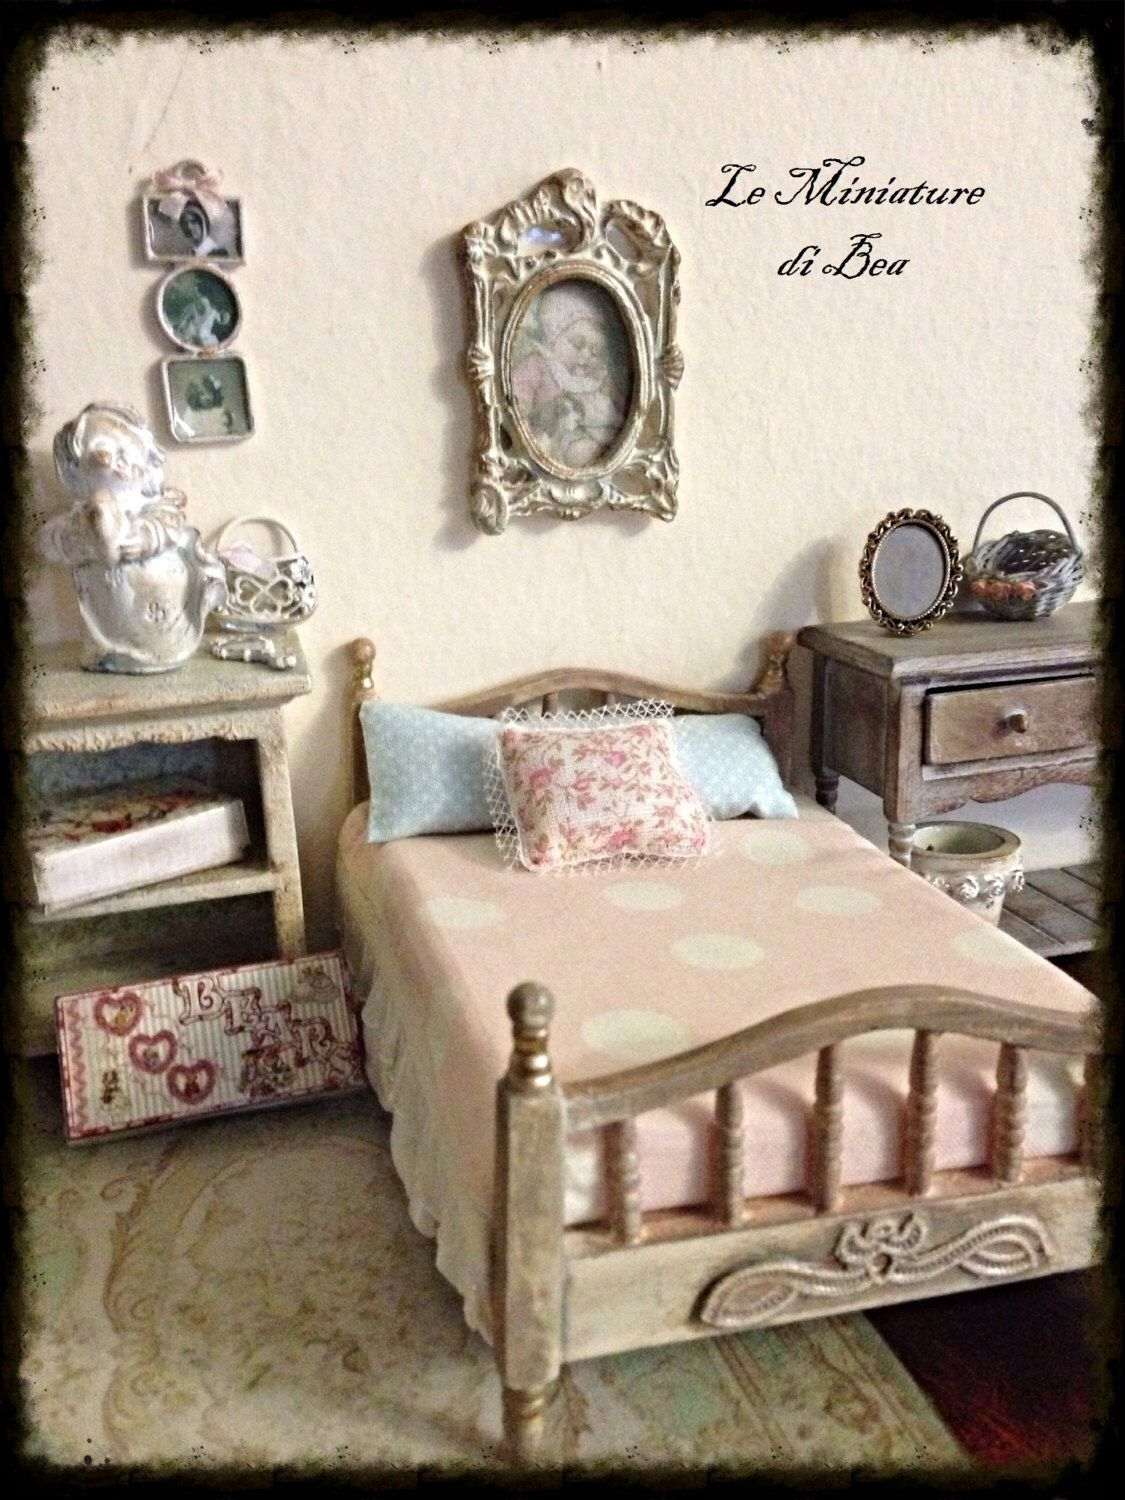 1:12 children bed miniature dolls house - hand made - shabby chic ...